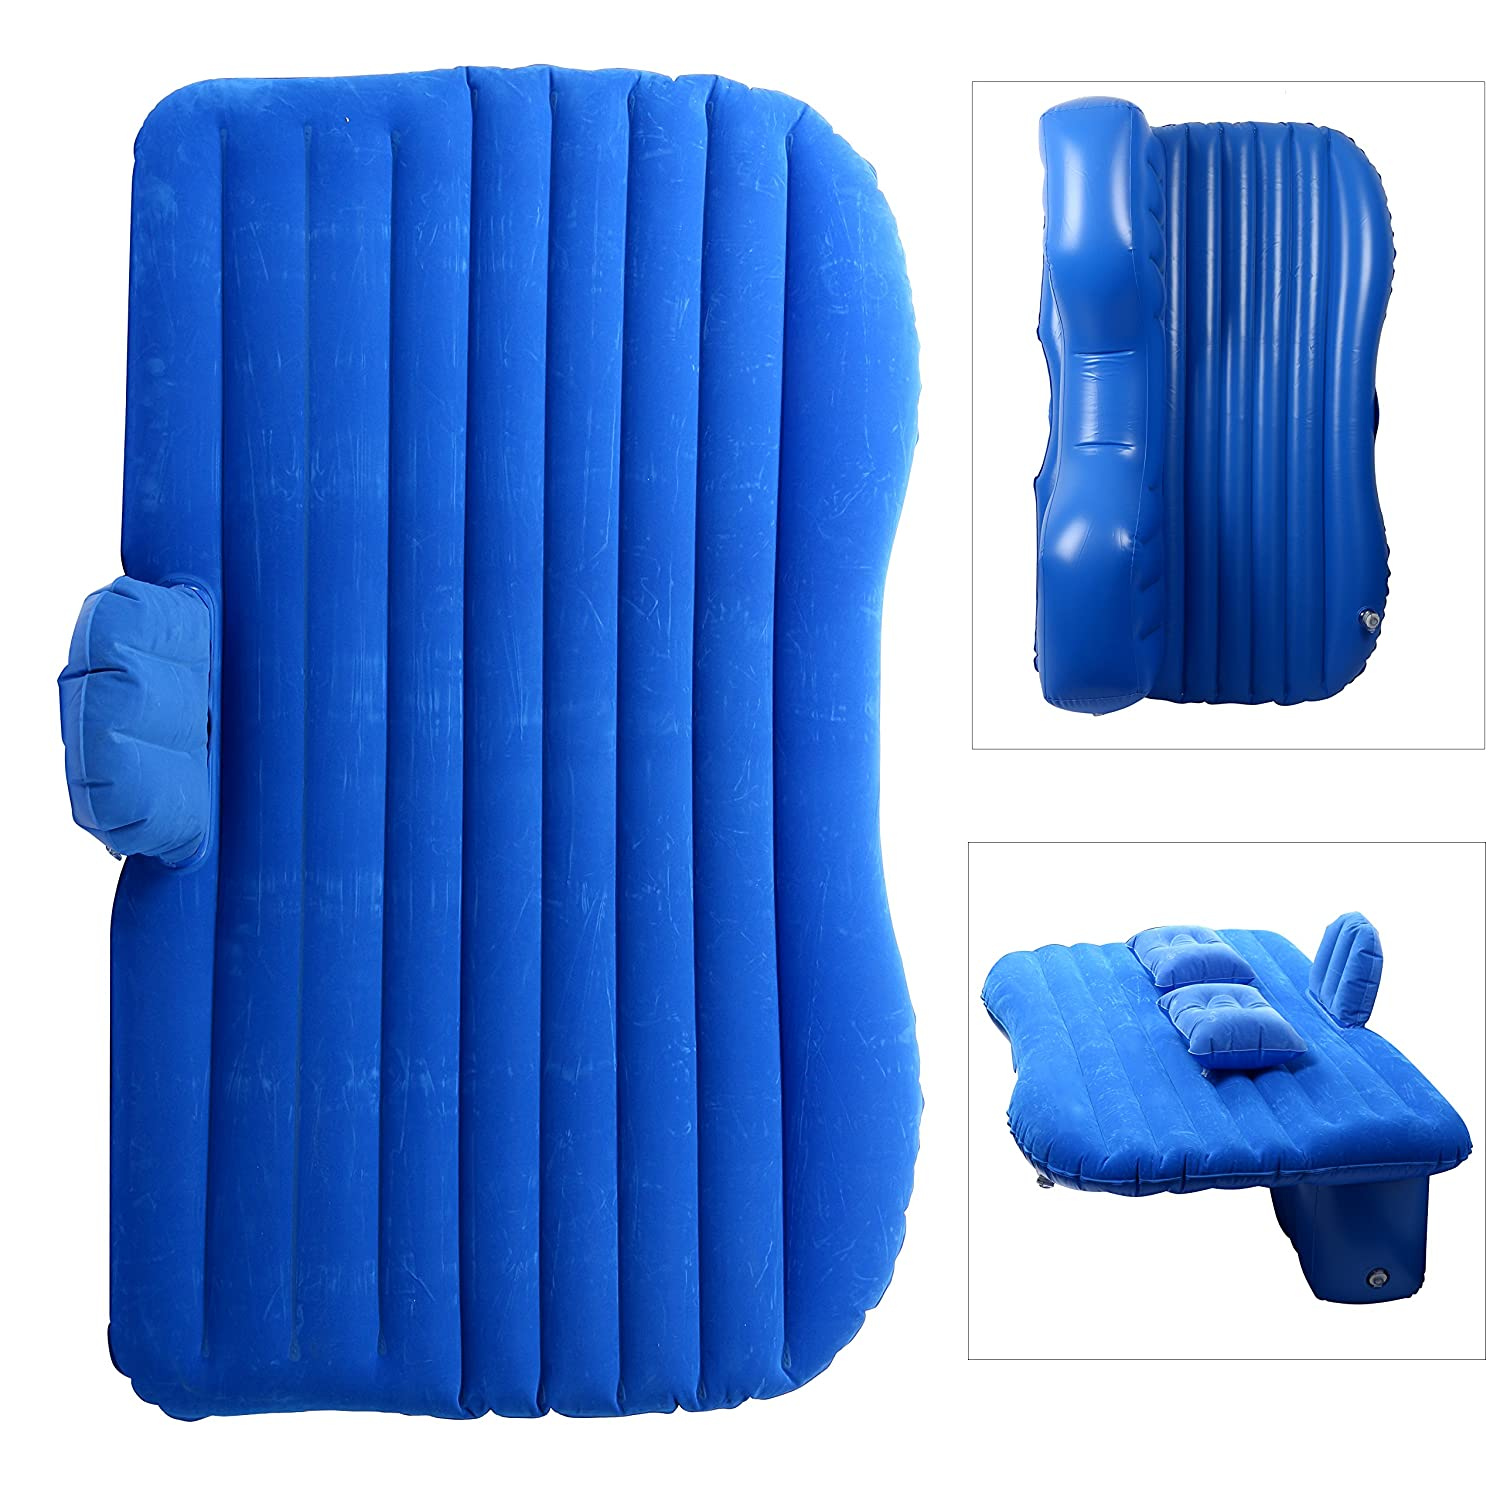 YaeTact Car Travel Inflatable Mattress Inflatable Bed Camping Universal with Two Air Pillows(Blue) Yaemart Corportation